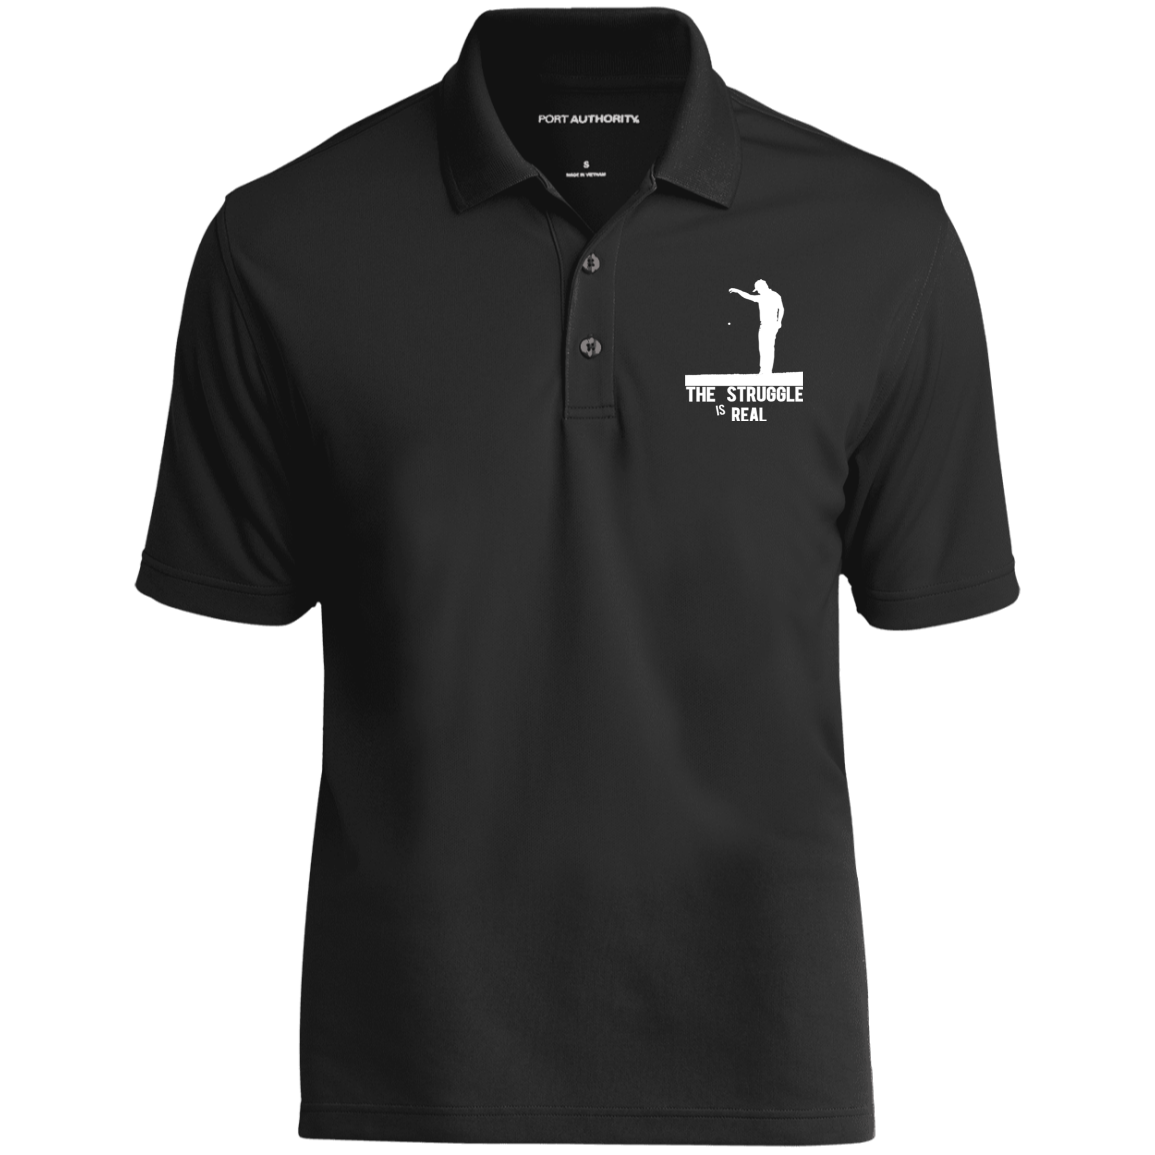 The Struggle Is Real- Port Authority Dry Zone UV Micro-Mesh Polo Black